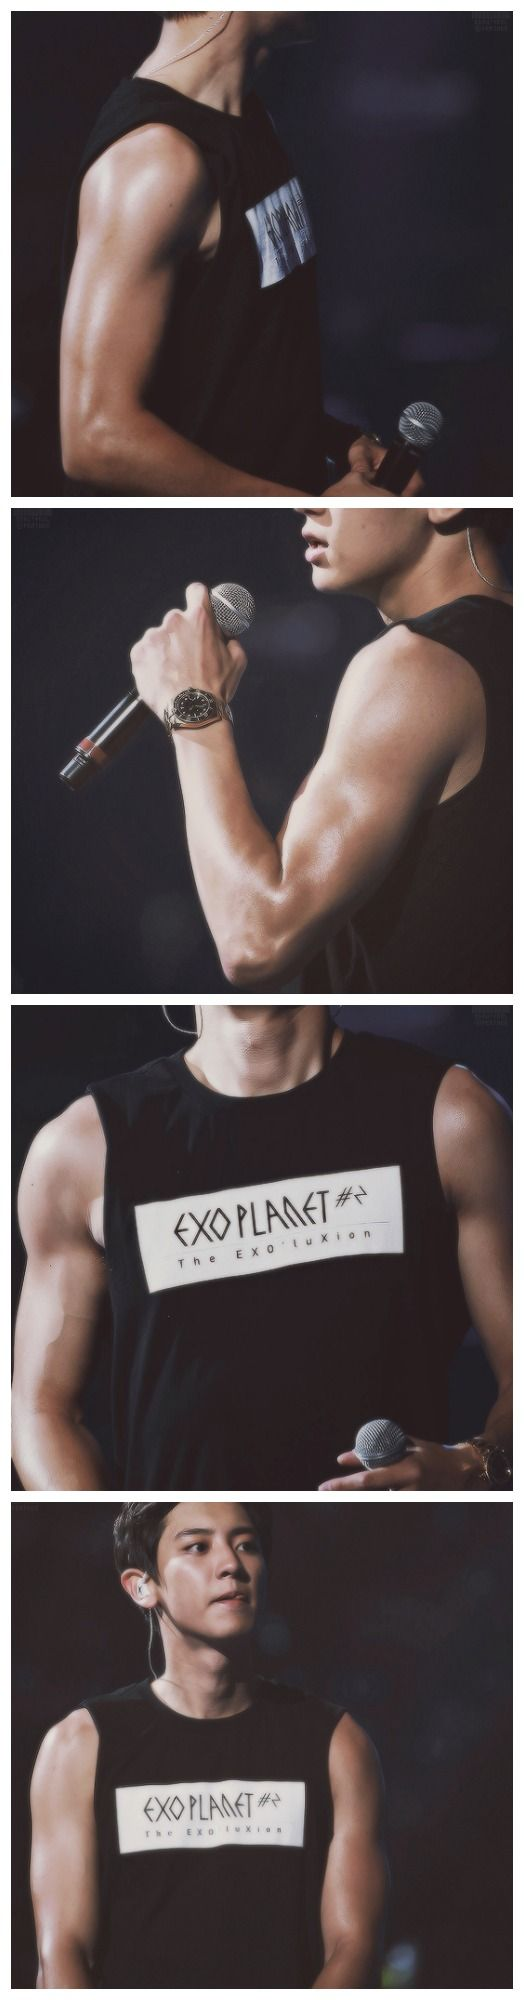 chanyeol's guns appreciation post ~ damn he has been working out omg beffy arms lol